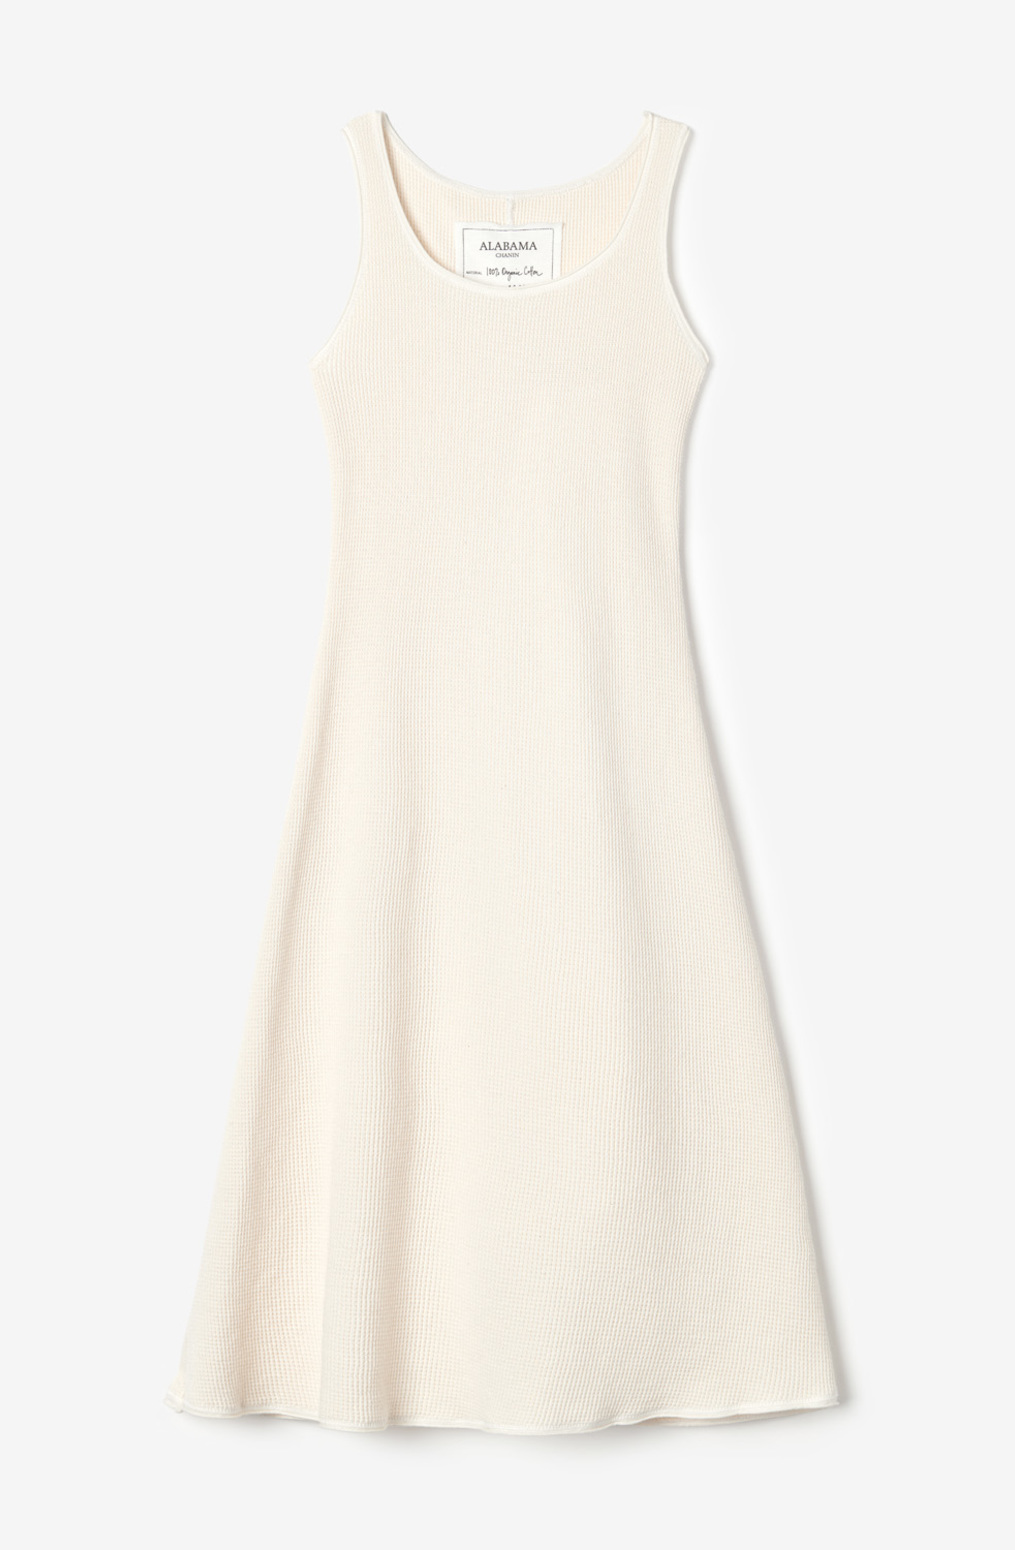 Alabama chanin  organic cotton  slip dress  leisurewear  everyday  layering